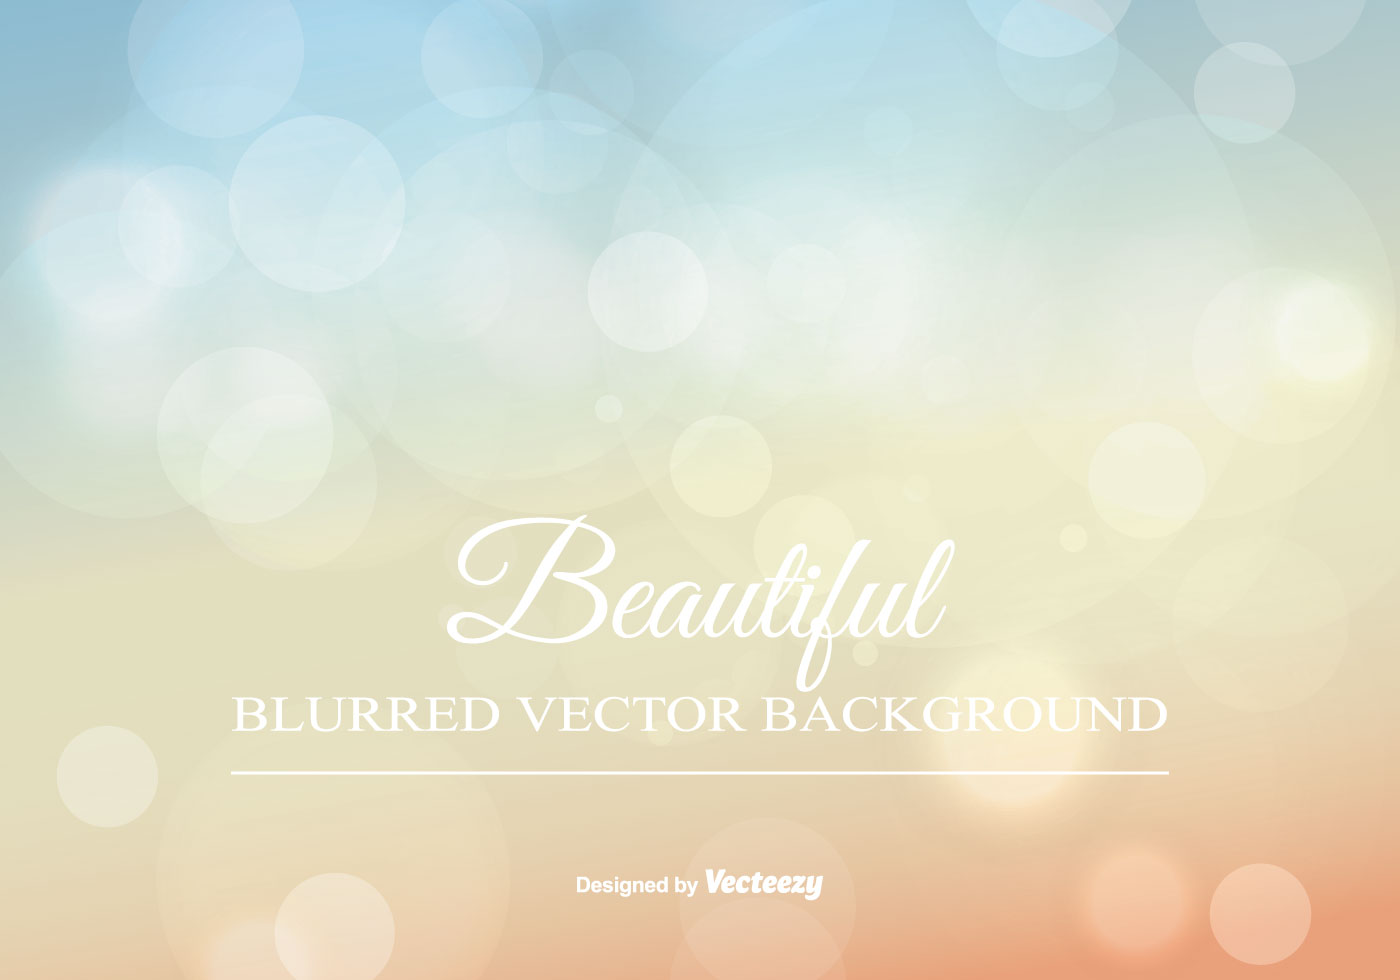 Enjoy Tropical Summer Holidays Backgrounds Vector 04 Free: Beauitiful Blurred Summer Background